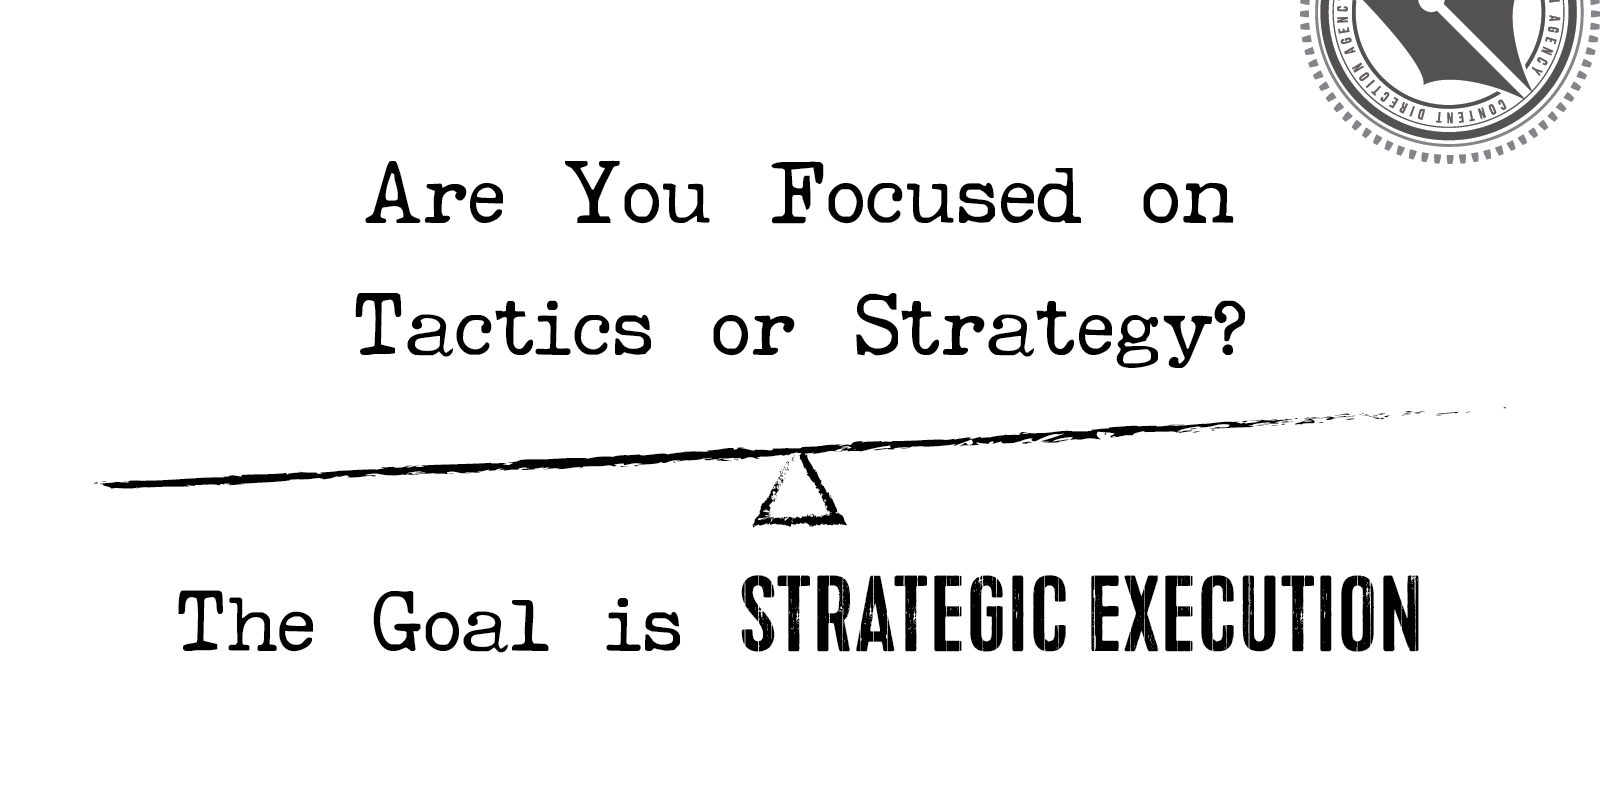 are you focused on tactics or strategy?